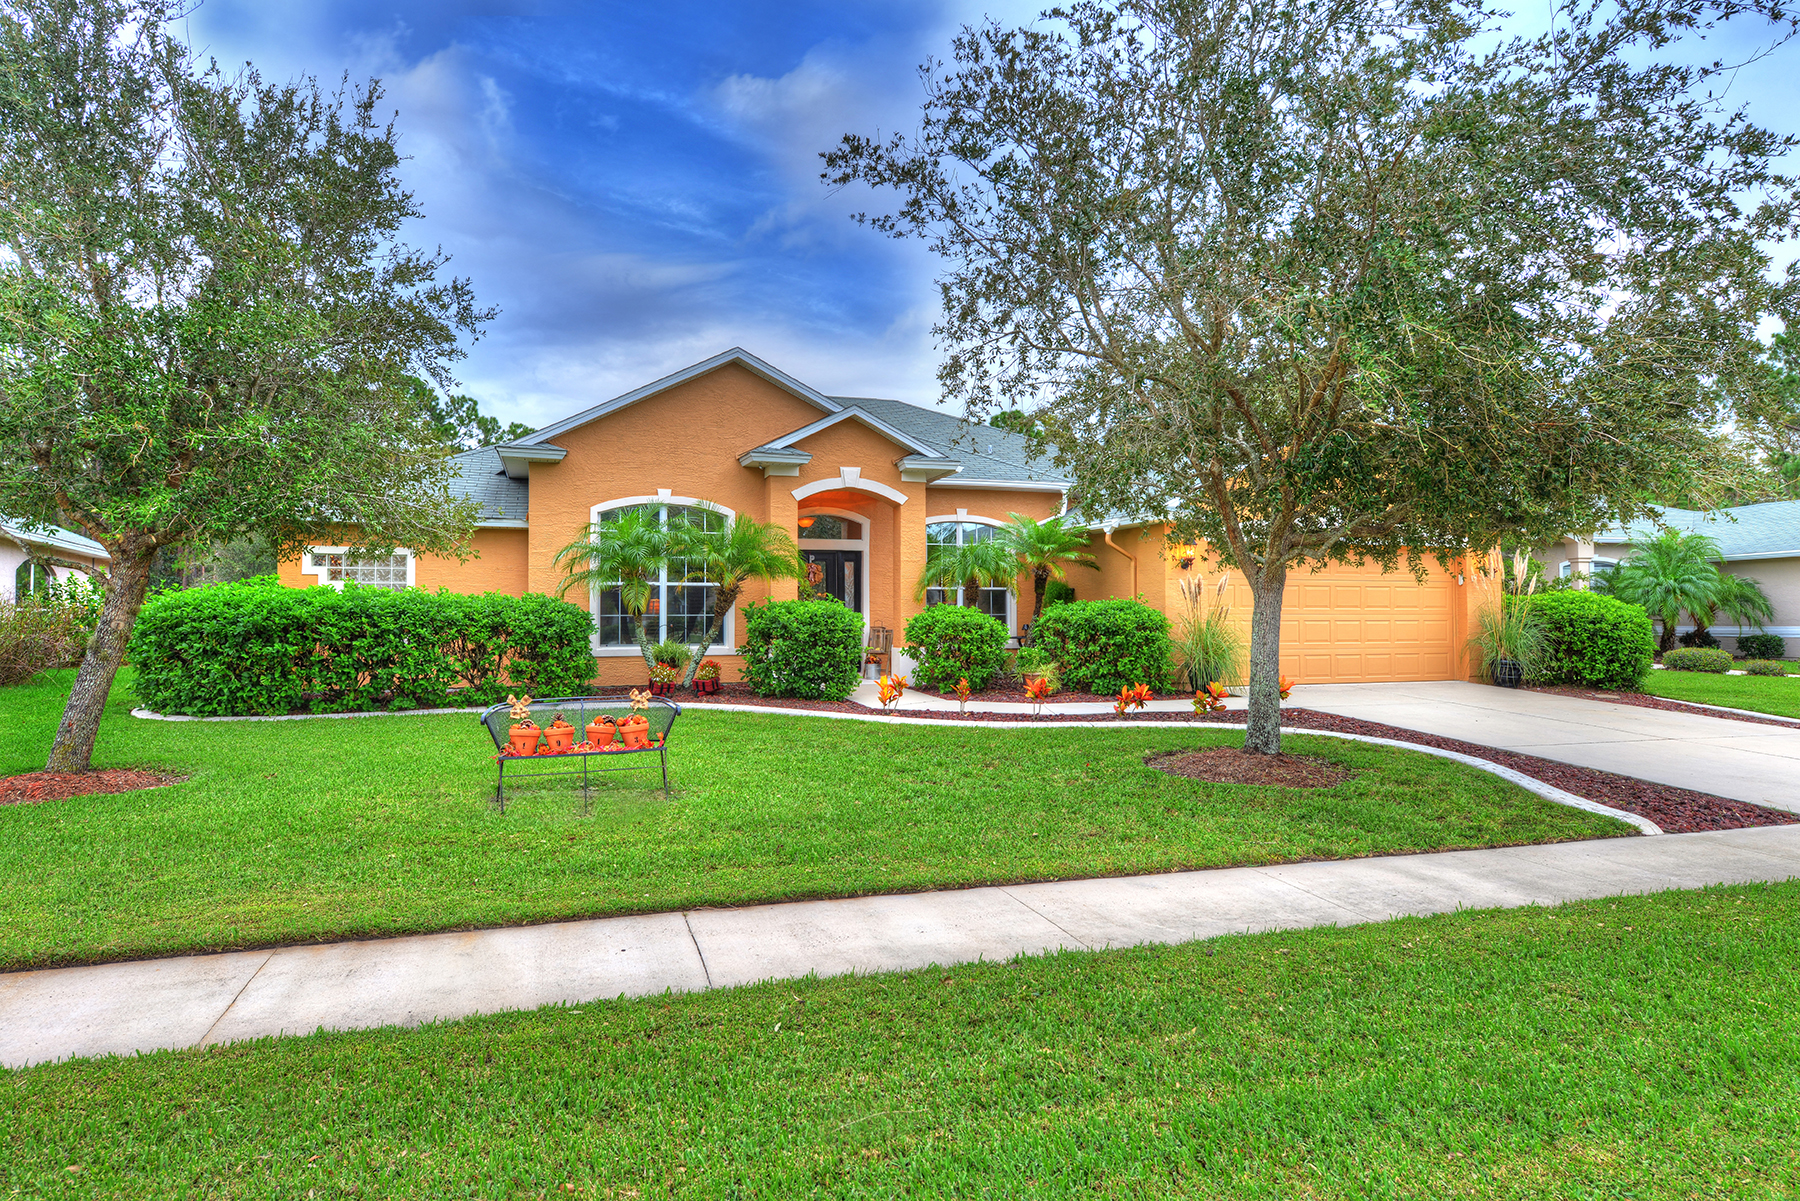 Villa per Vendita alle ore SPRUCE CREEK AND THE BEACHES 1913 Creekwater Blvd Port Orange, Florida, 32128 Stati Uniti